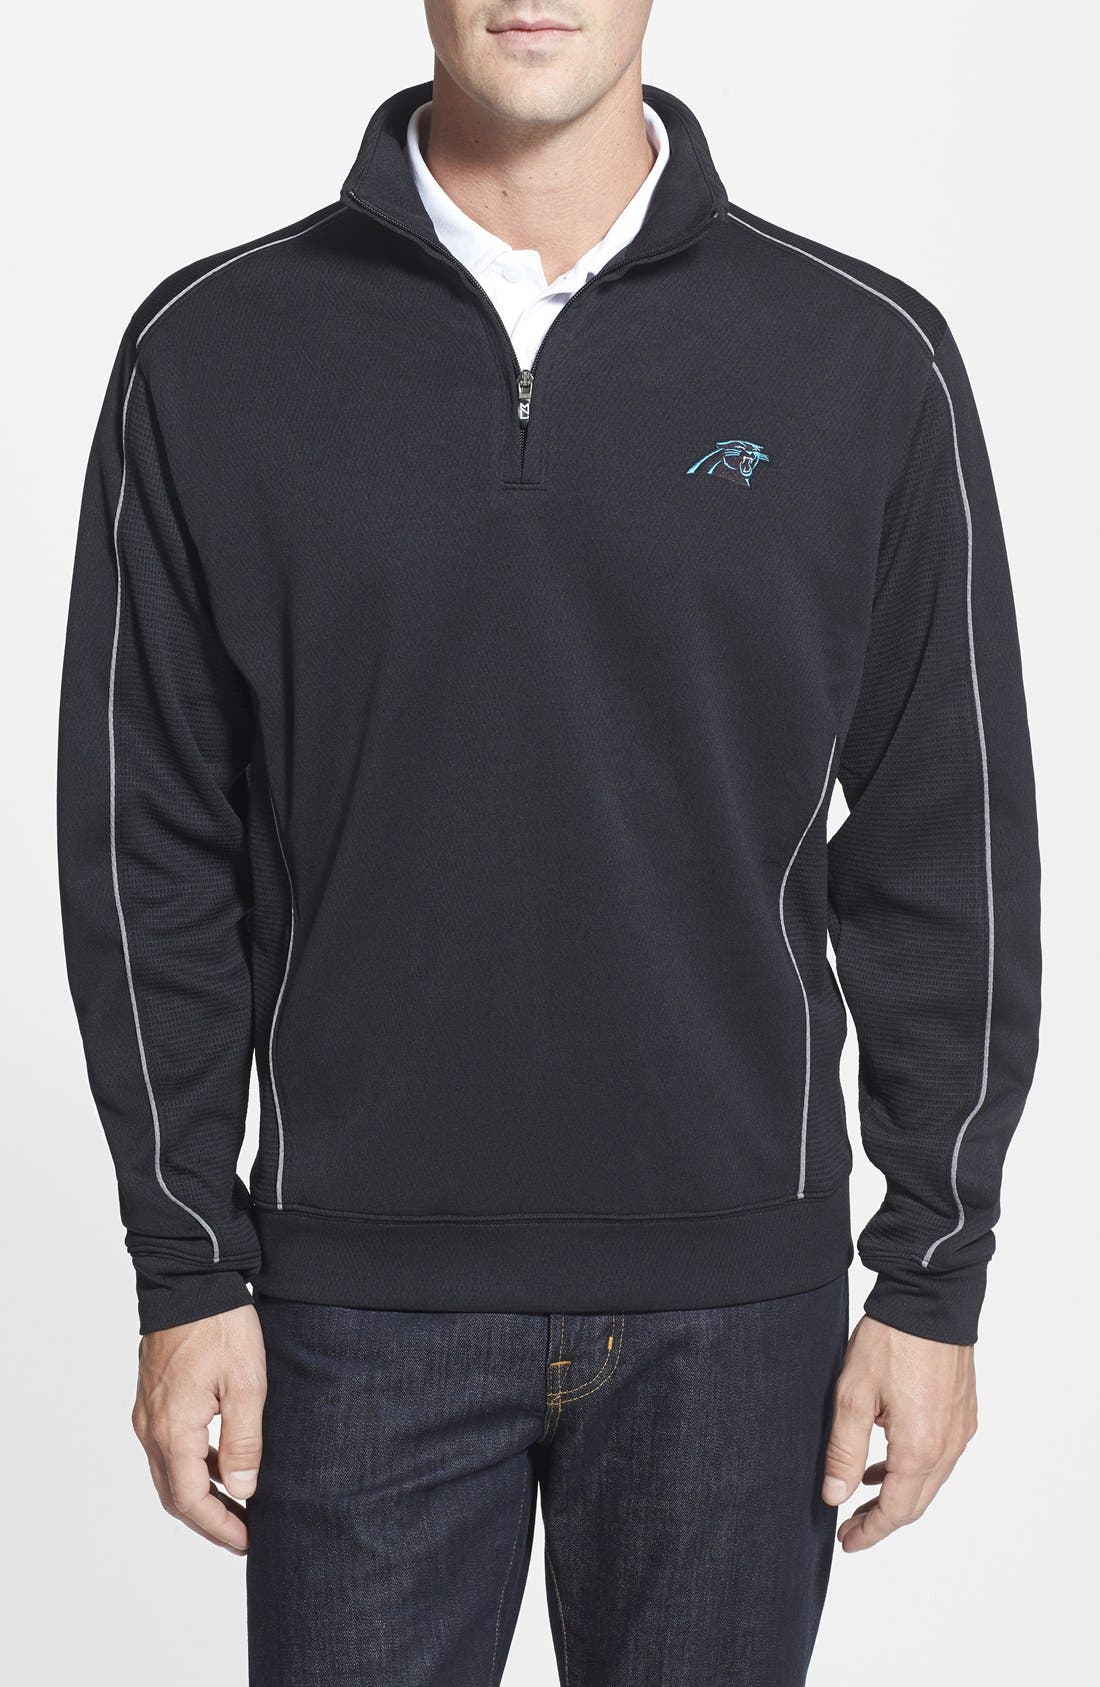 Cutter & Buck Carolina Panthers - Edge DryTec Moisture Wicking Half Zip Pullover